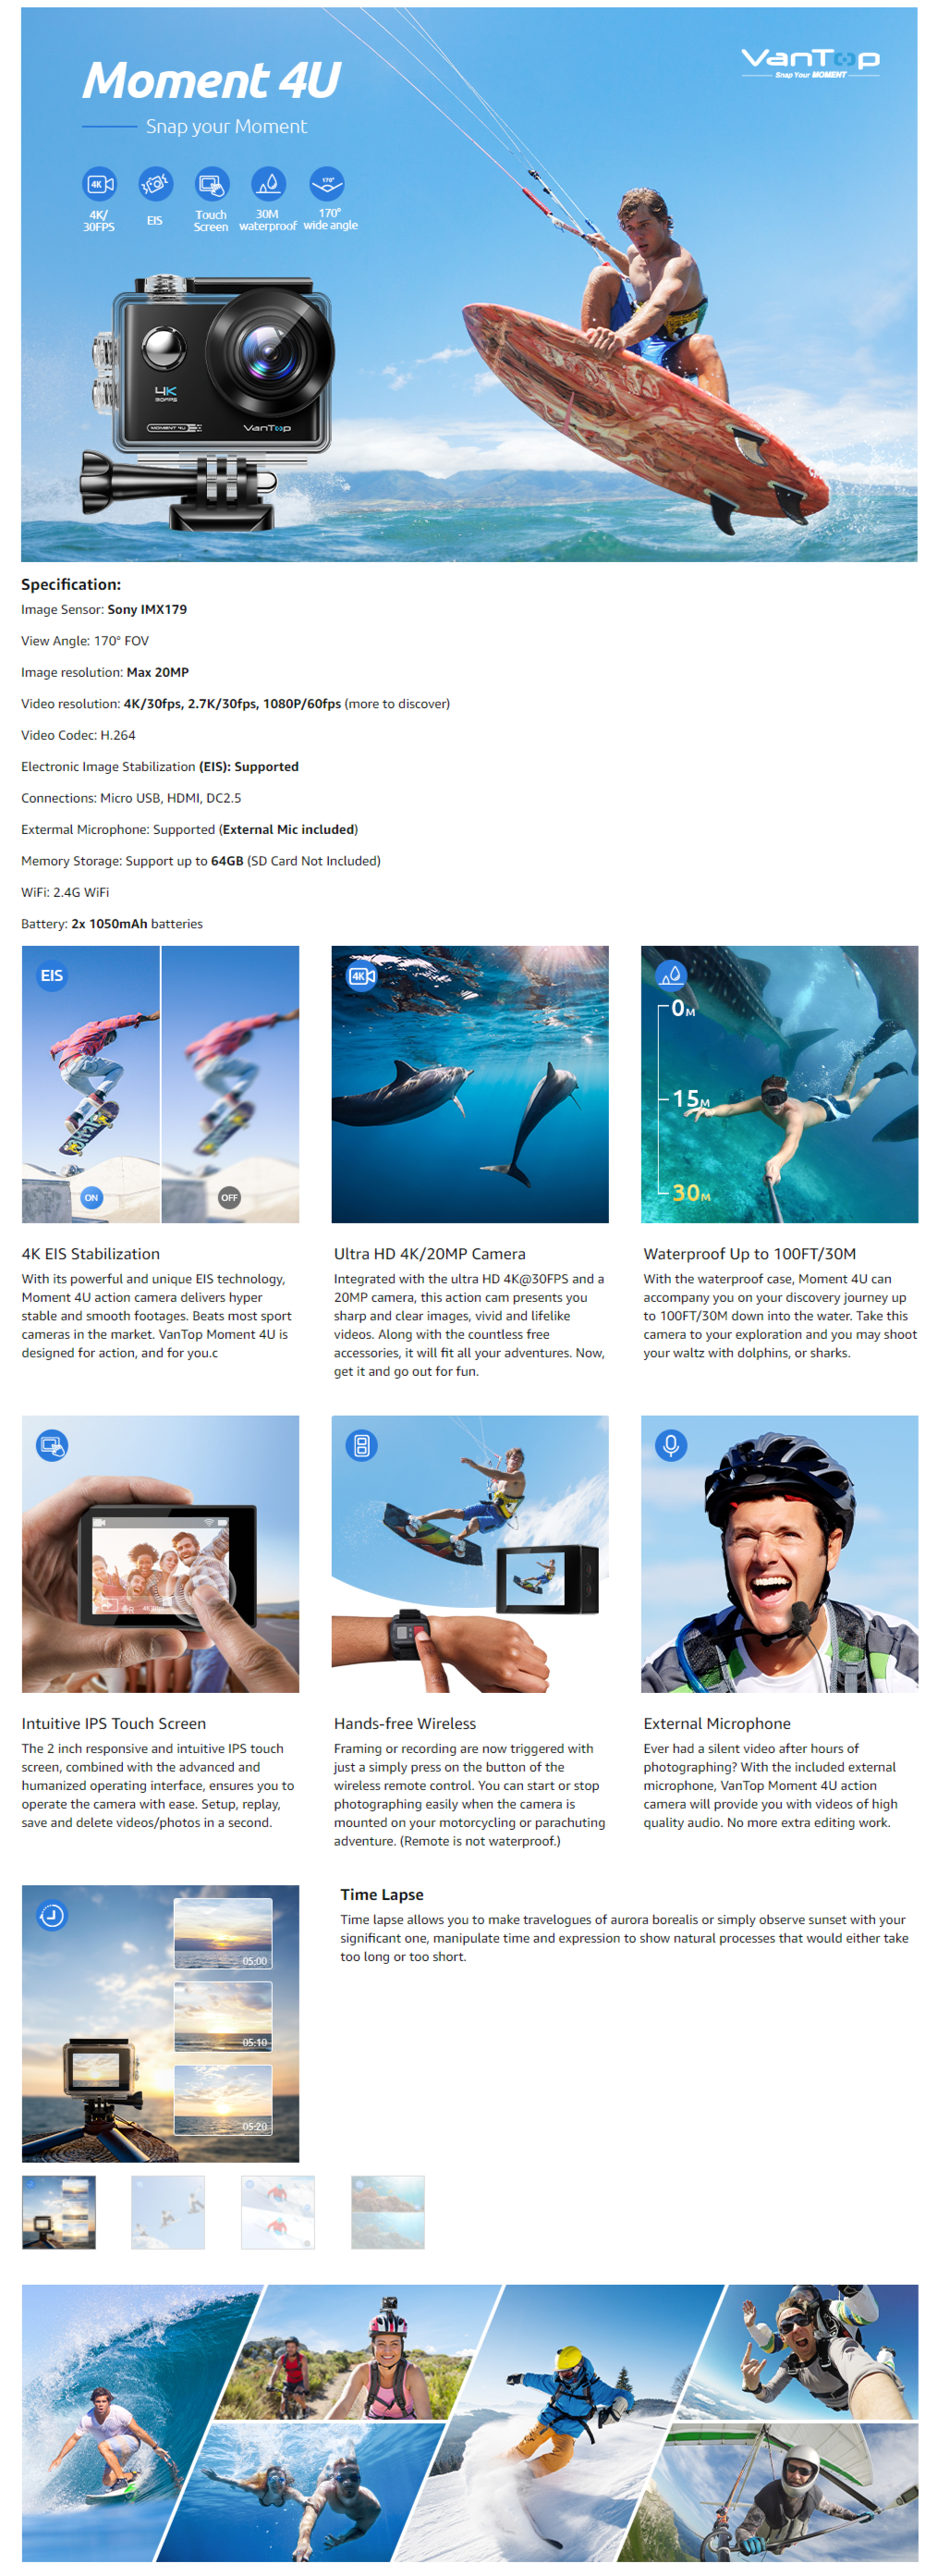 Vantop Moment 4U Action Camera Under 8000 Rupees Only in India